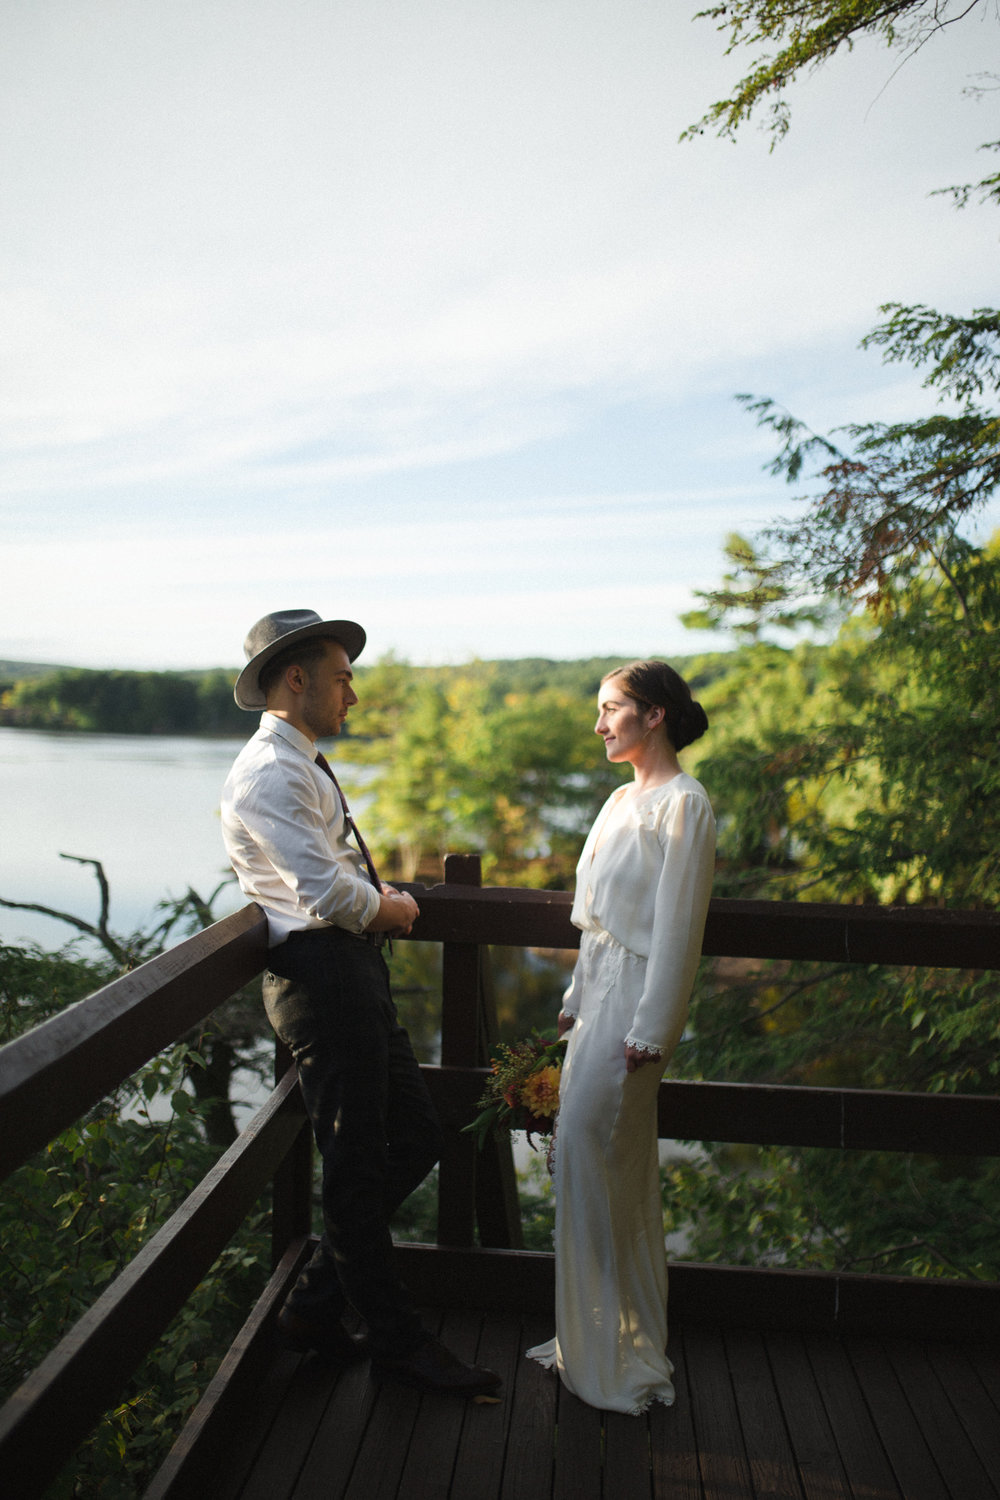 Western Mass Elopement Photographer_Meg Haley Photographs_053.jpg